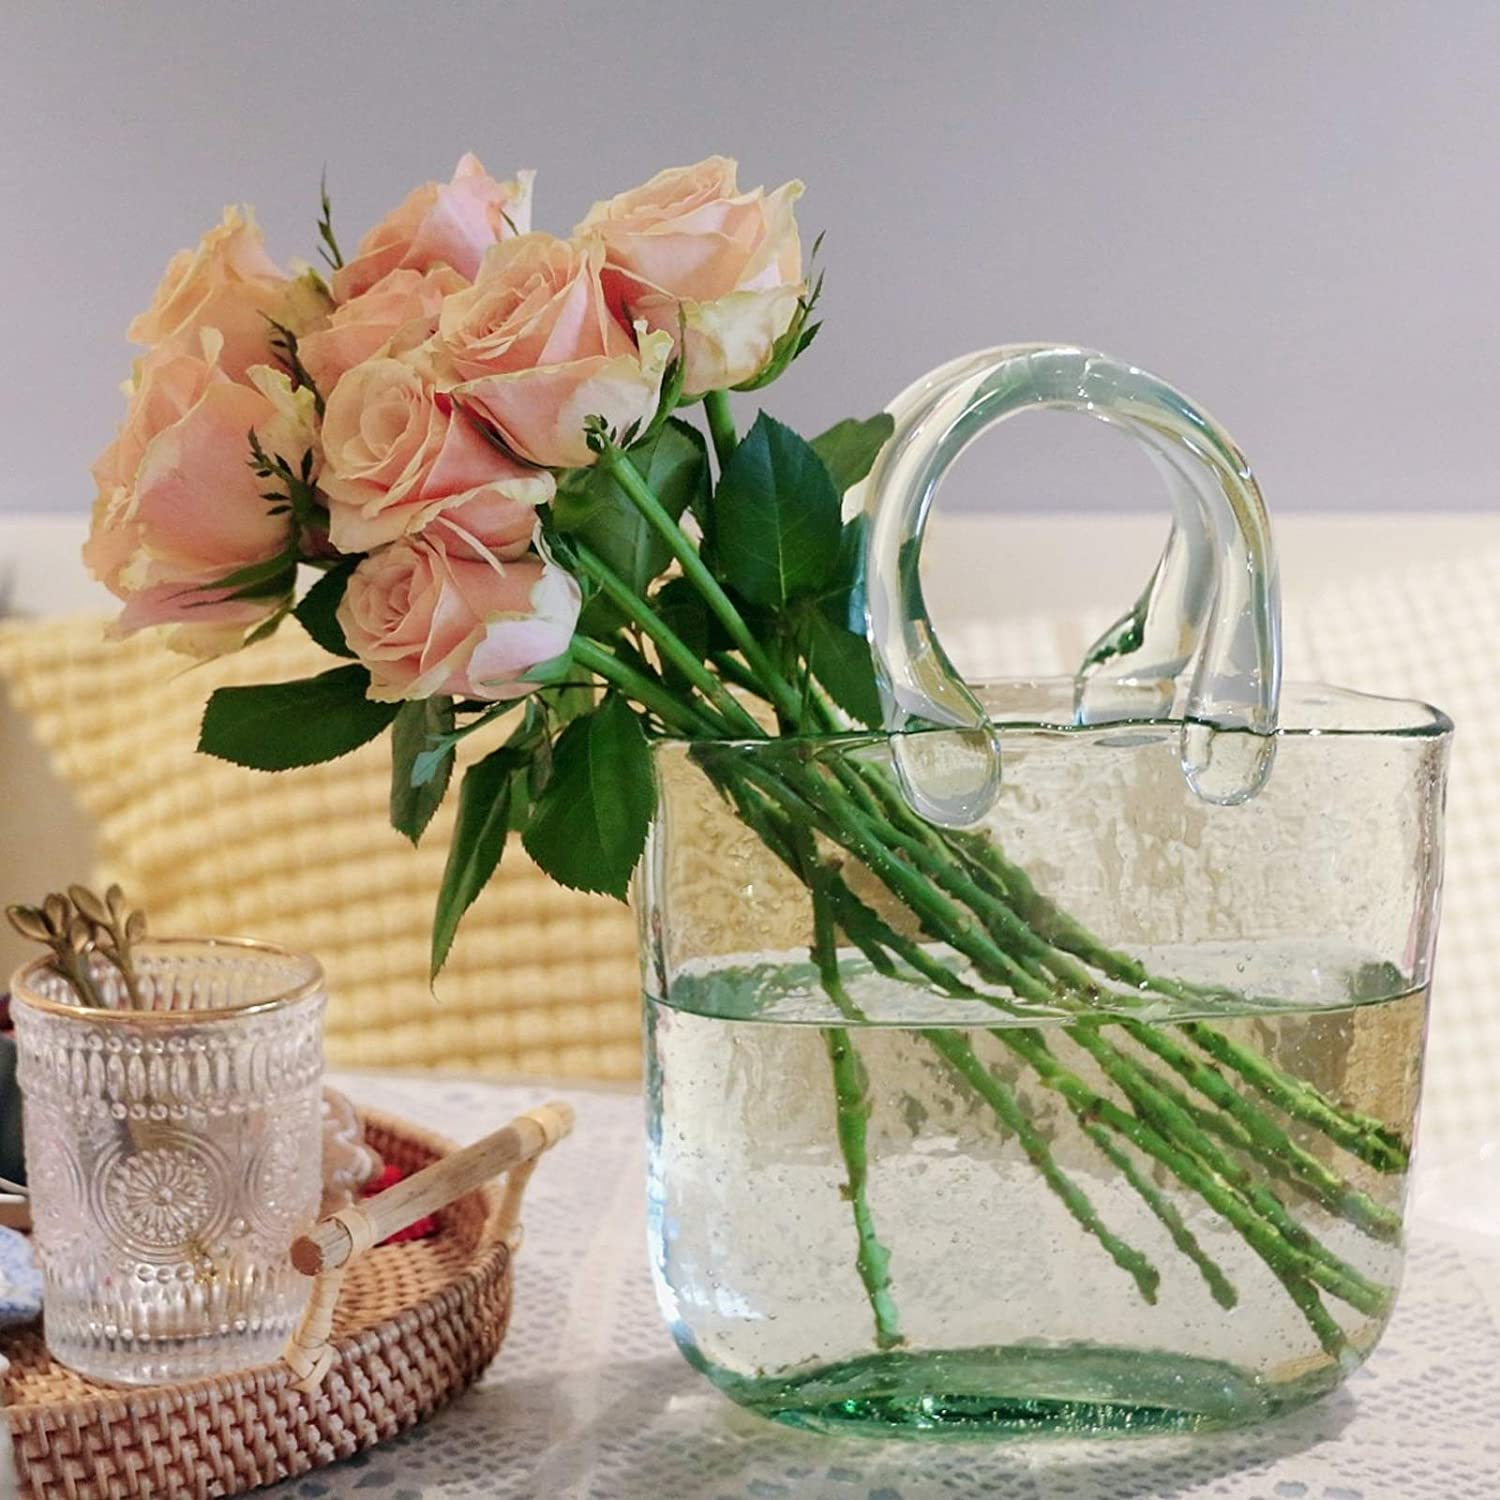 Glass Flower Vases for Centerpieces Floral Contemporary Big Bag Style with Handle Light Green Flower Bud Arrangement Vases Fish Bowl for Dining Table Home Events Decor